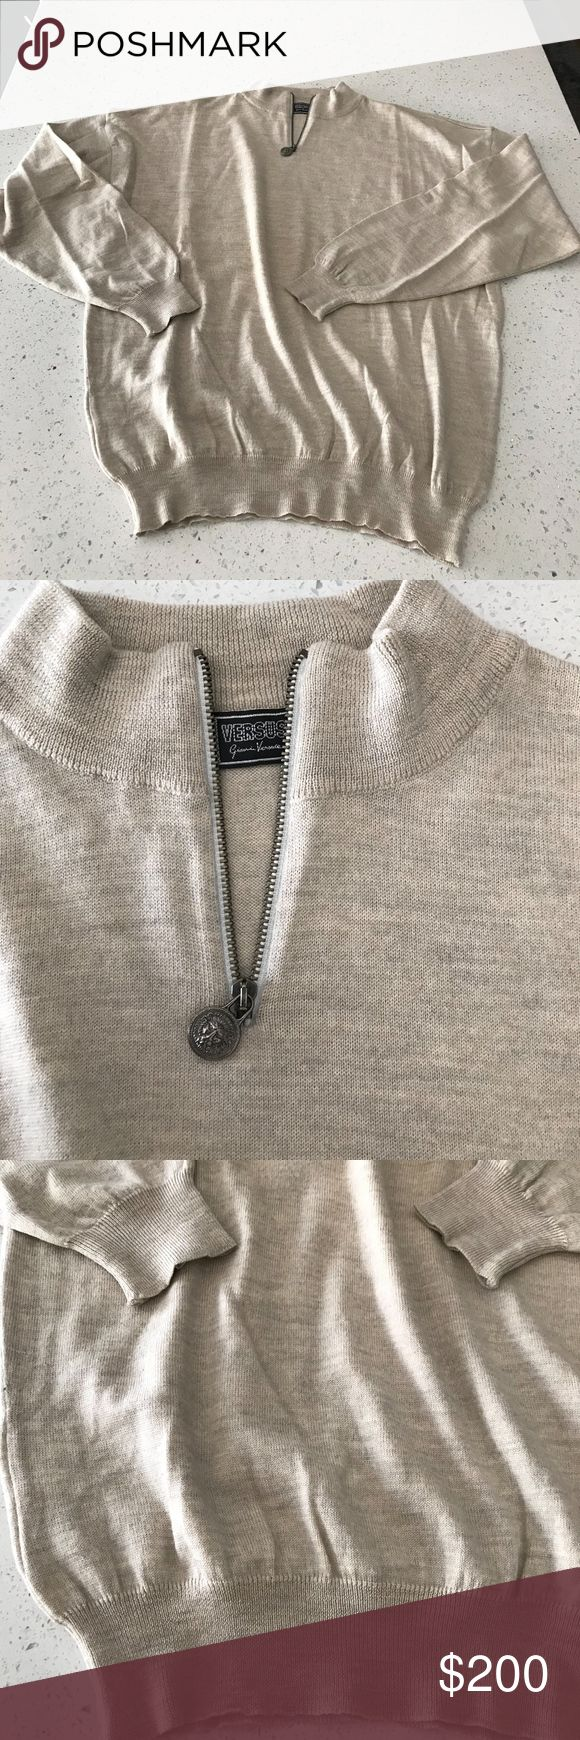 """Men's Versace """"versus"""" cardigan color """"sand"""" with logo Versace zipper on neck , the cardigan has no stain , size 40 (please see measures) 100% virgin wool , hologram inside for proof authenticity , shoulder 24"""", under arms 23"""" , sleeves 22"""", length 27.5"""" Versace Sweaters Cardigan"""